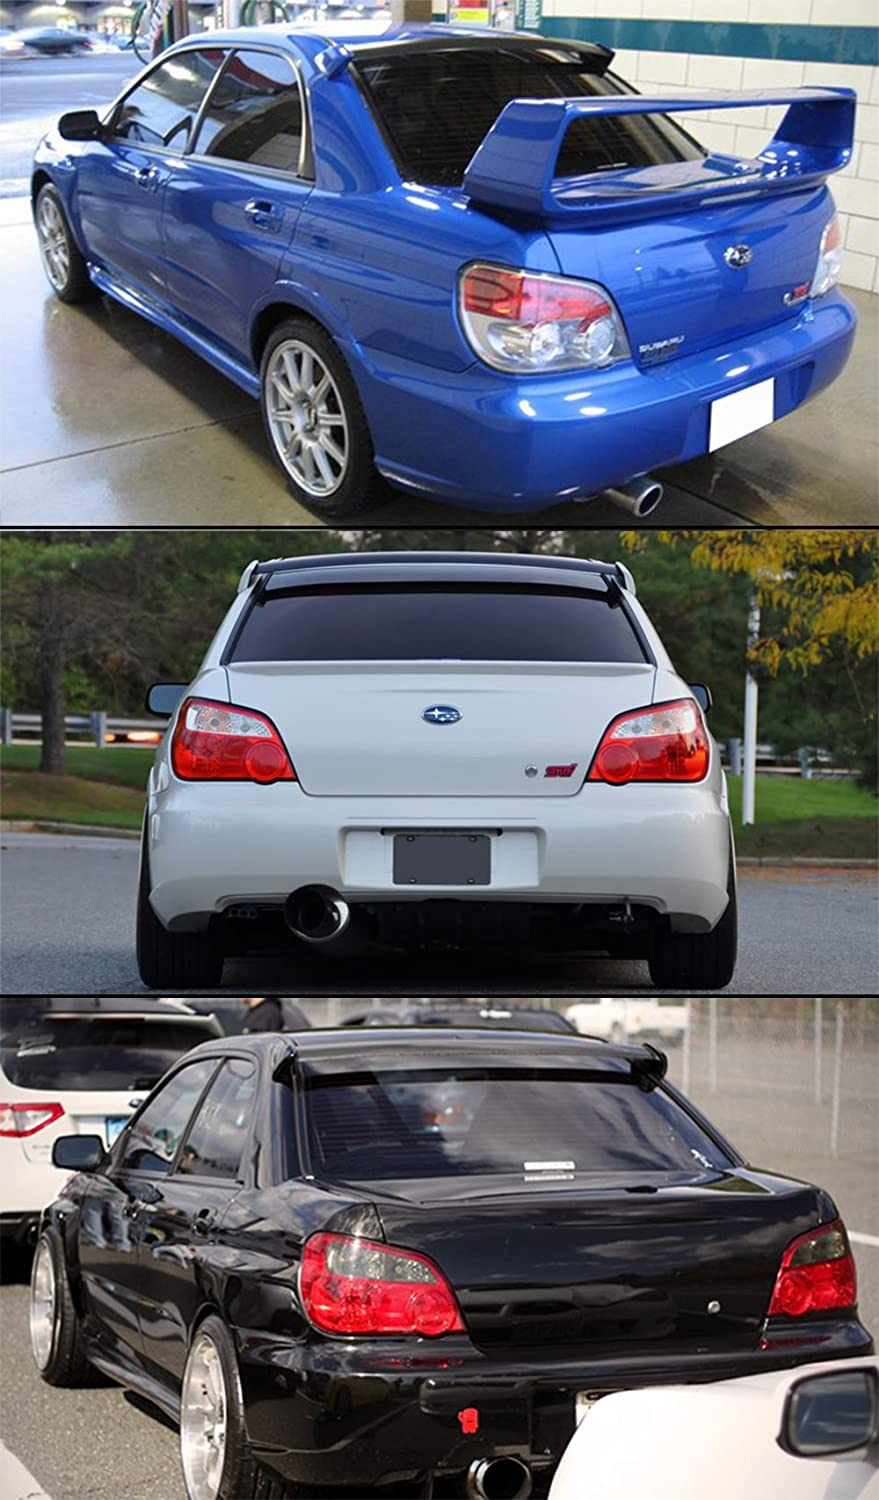 Spoilers, Wings & Styling Kits Cuztom Tuning Painted Glossy Black ...